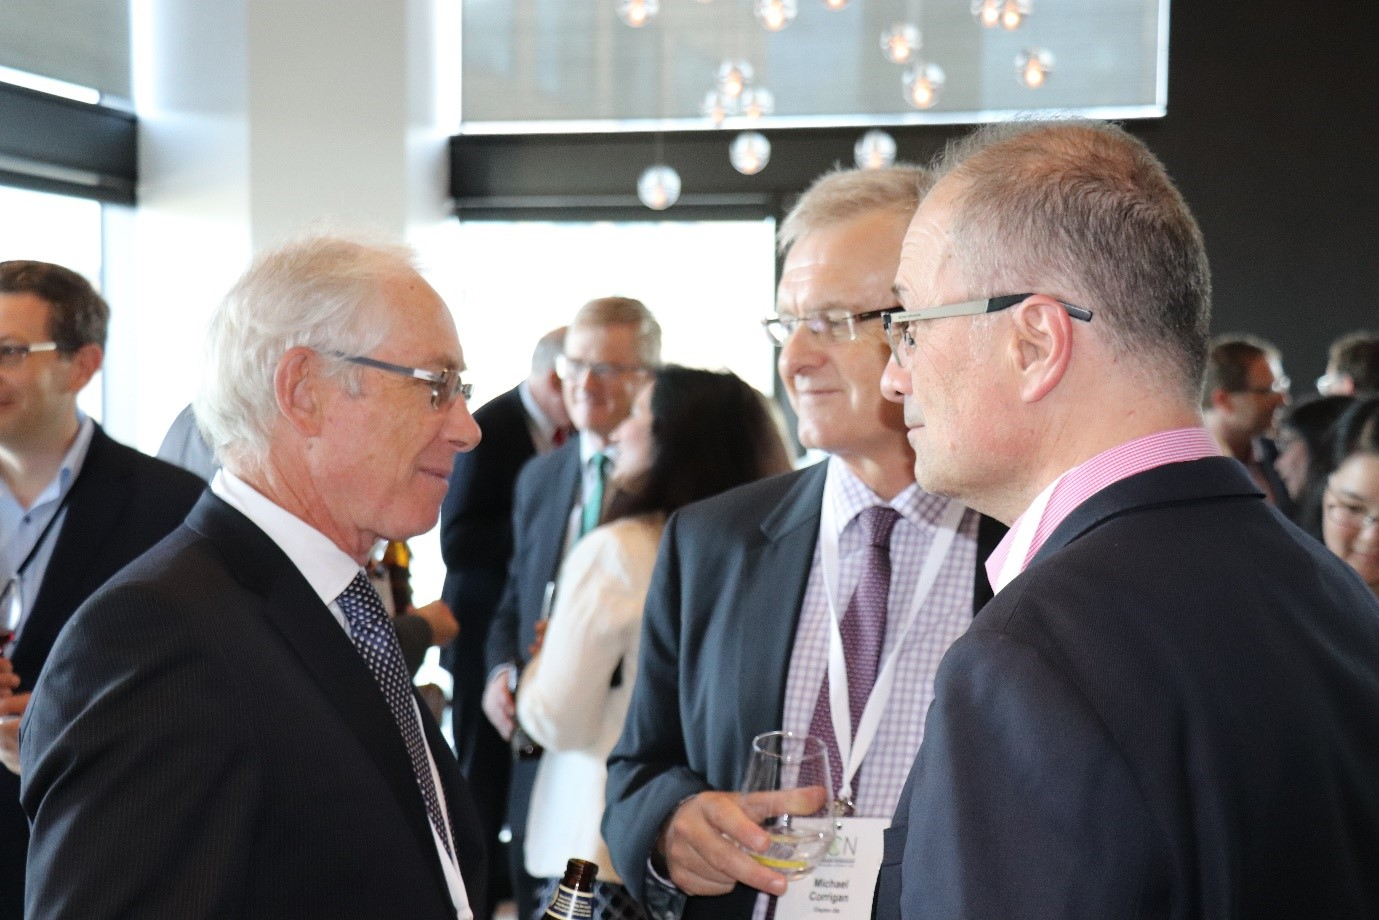 Welcome reception - image 4